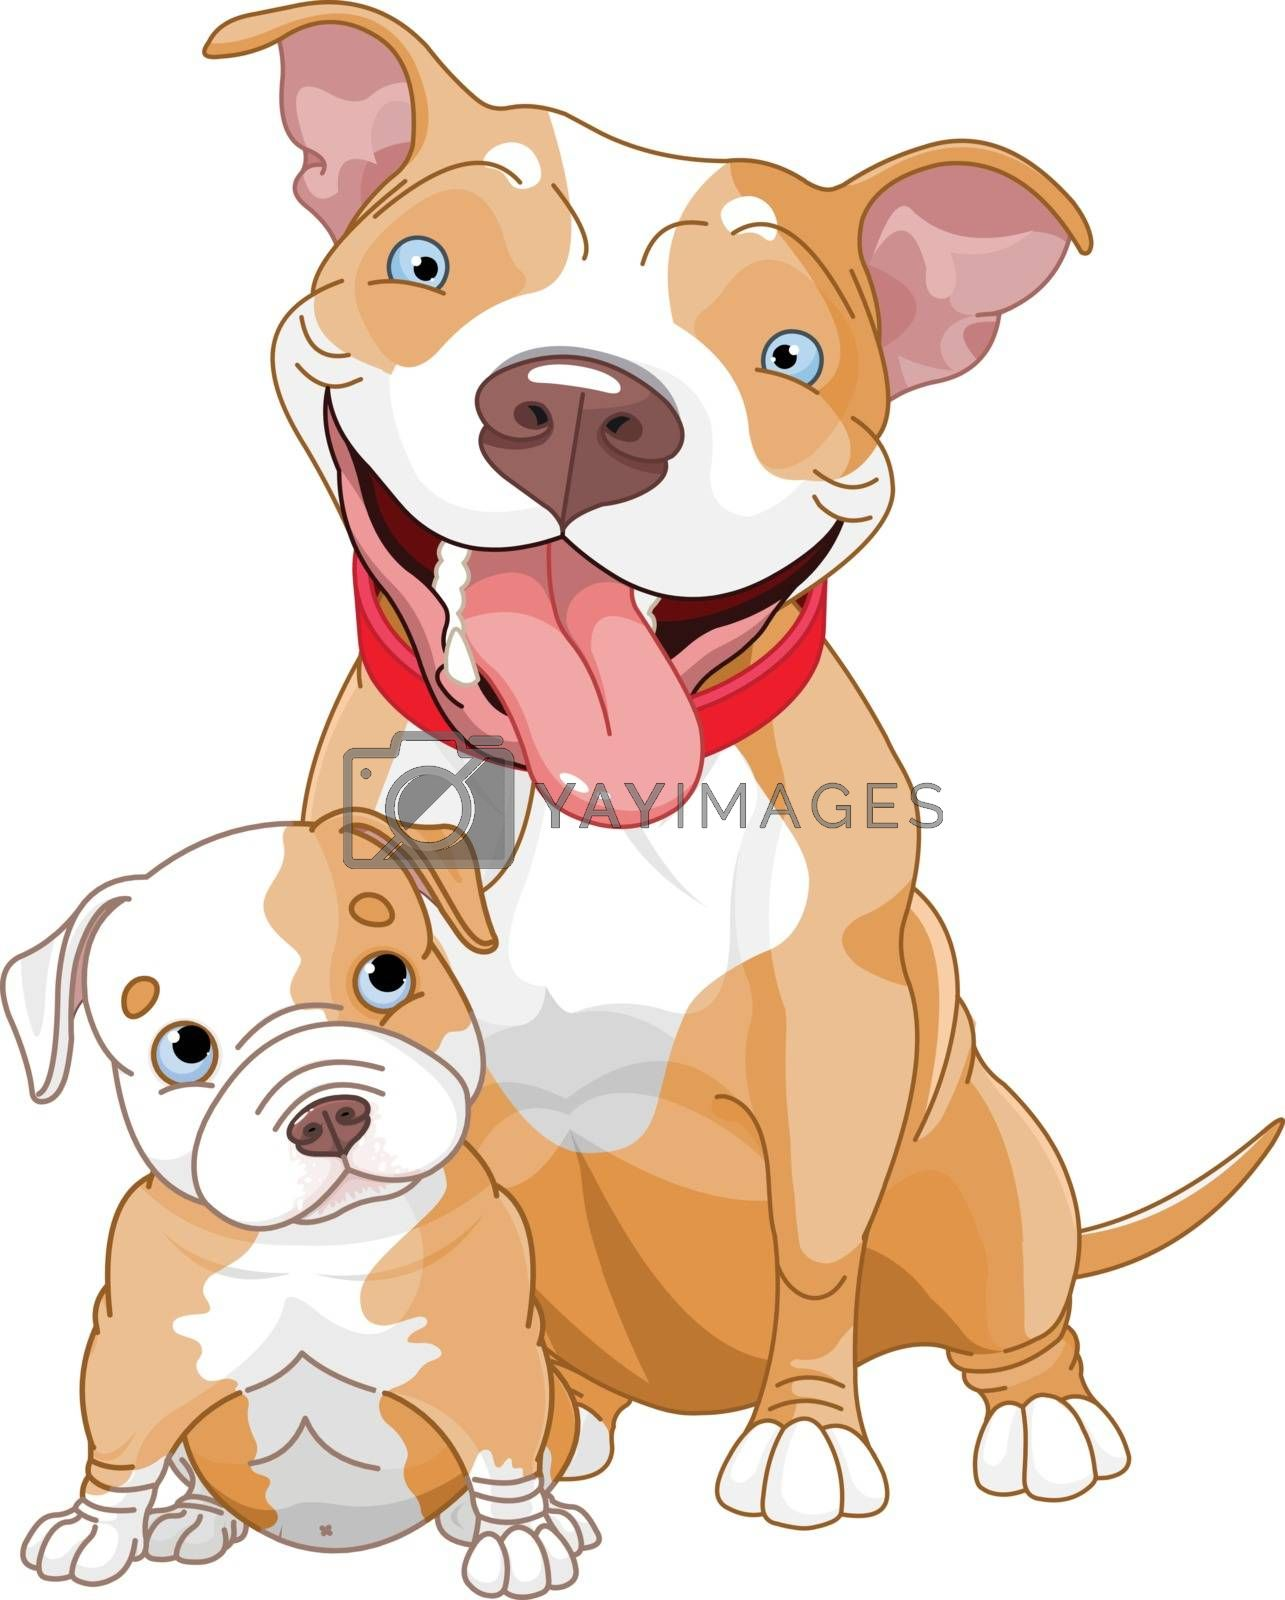 Royalty free image of Pit-bull mother and cub by Dazdraperma